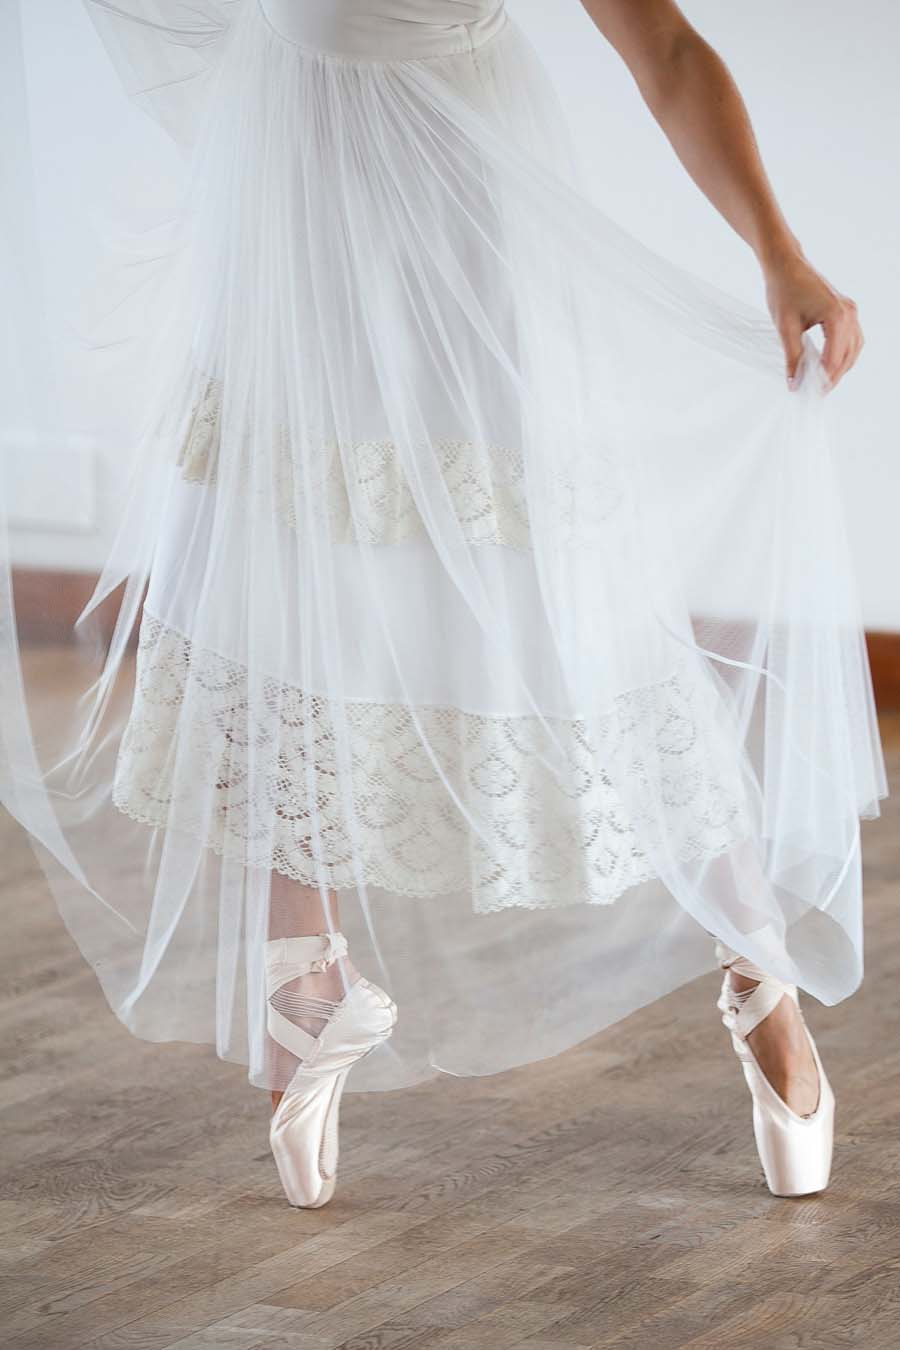 Eco Ballerina Bridal: An Eco Wedding Editorial to Inspire Ethically Conscious Brides!